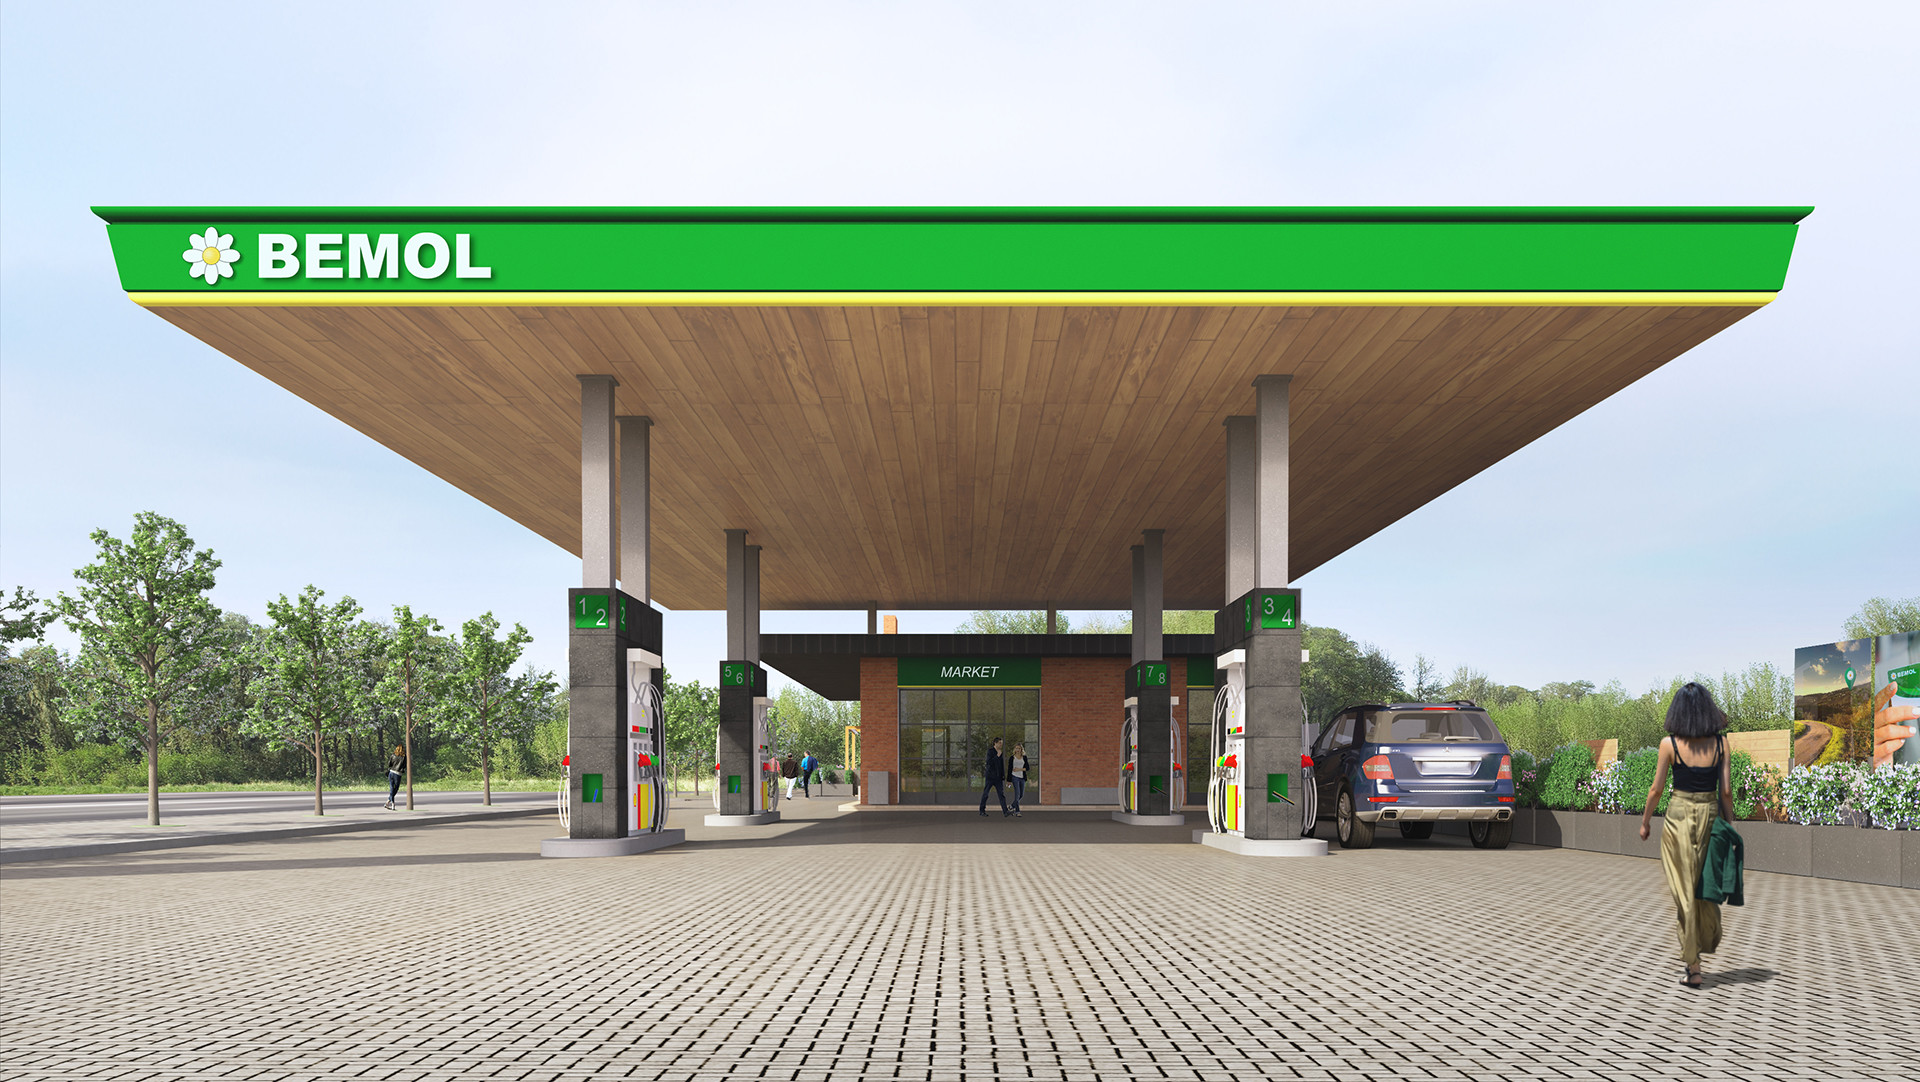 Wisp-Architects-Petrol-Station-Renasterii-2-1920x12801-1920x1157